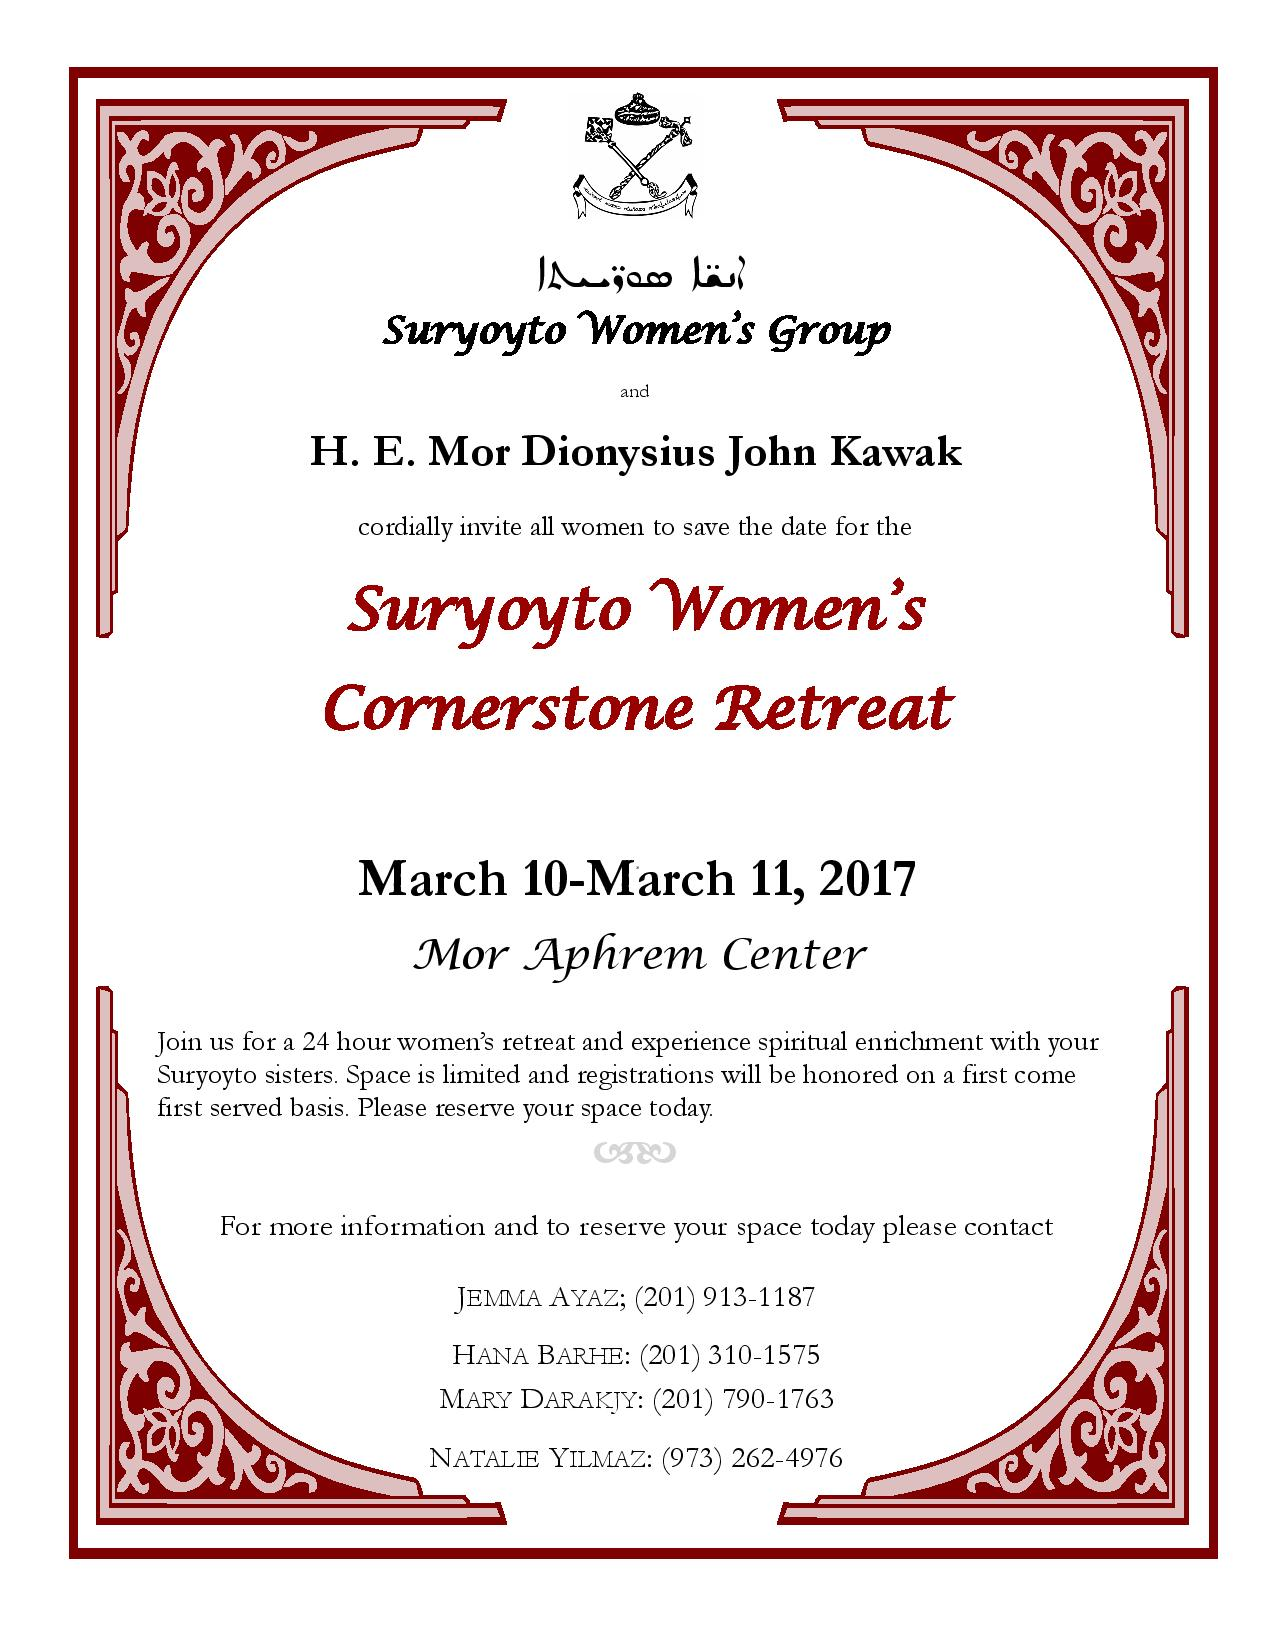 Best of photograph of cna certification business cards and open invitation for suryoyto women s cornerstone retreat syriac xflitez Gallery